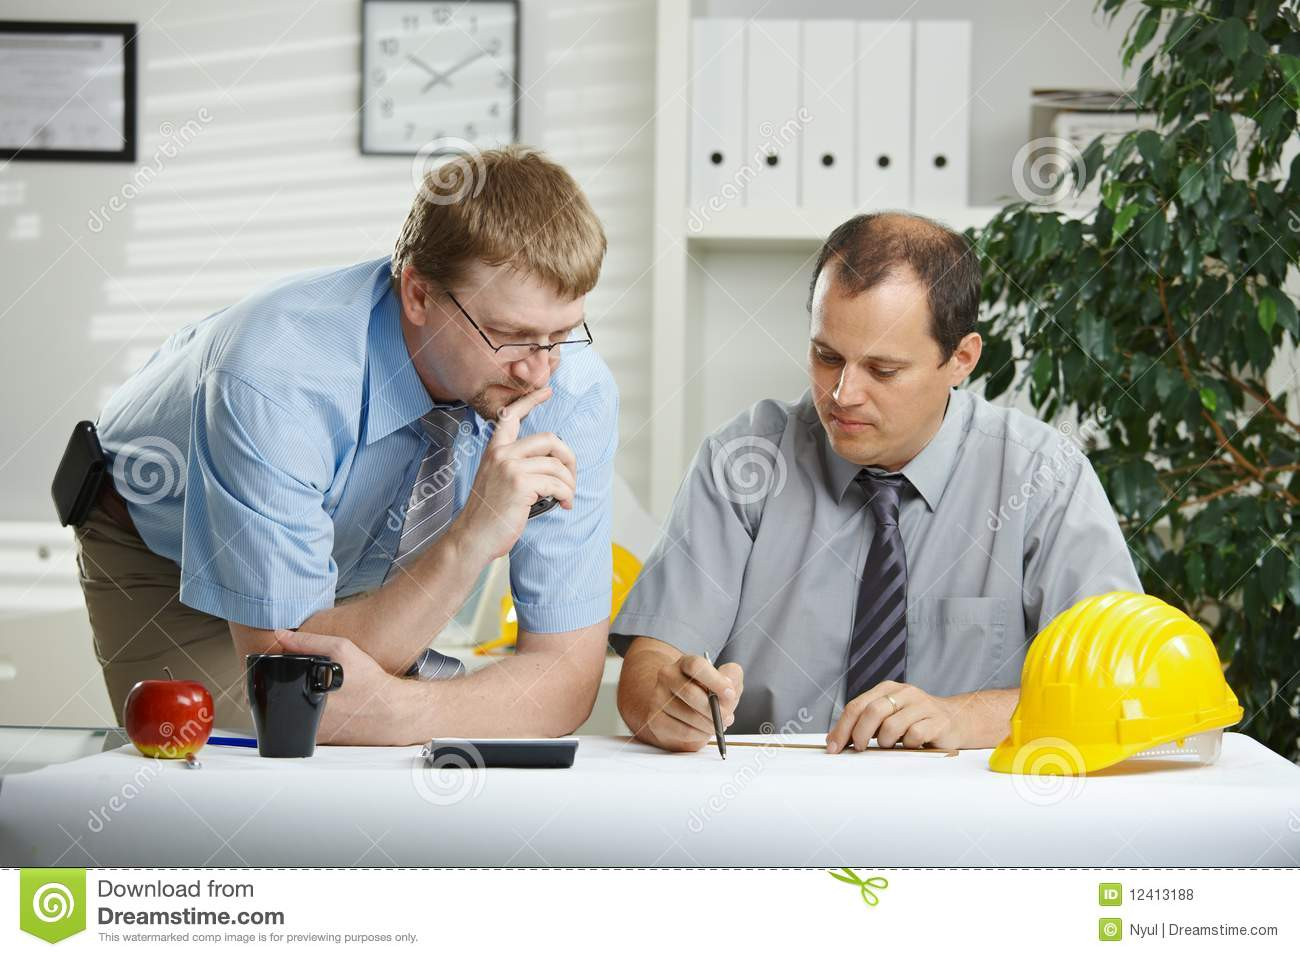 Architects talking at office